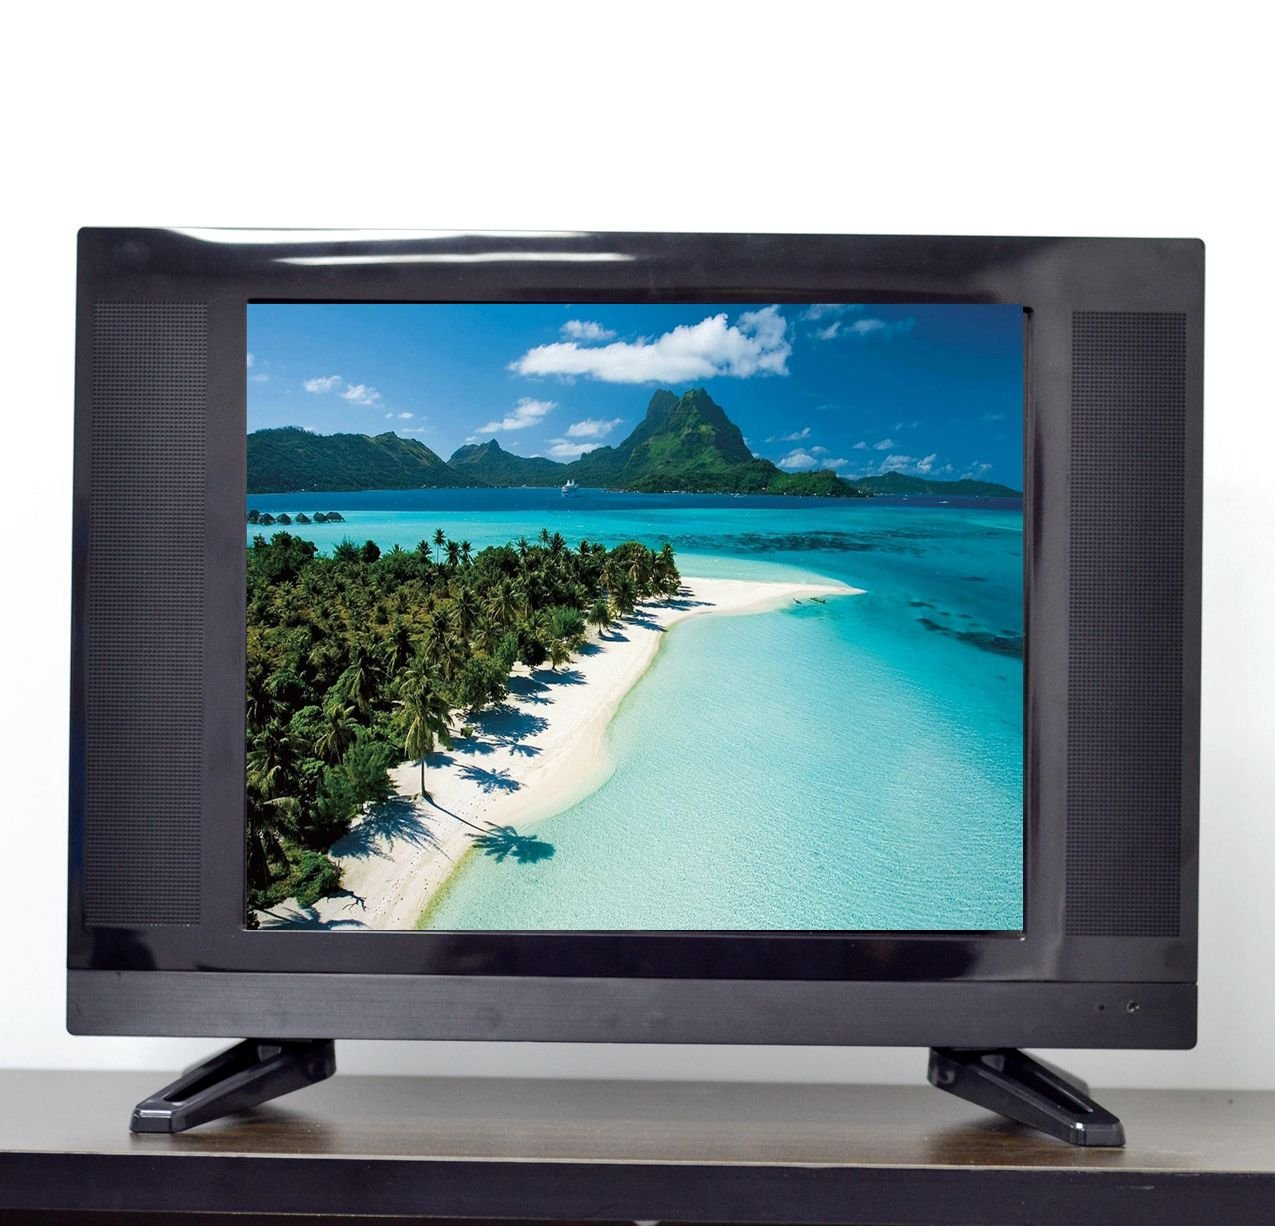 Xinyao LCD 15 inch led tv popular for lcd tv screen-1